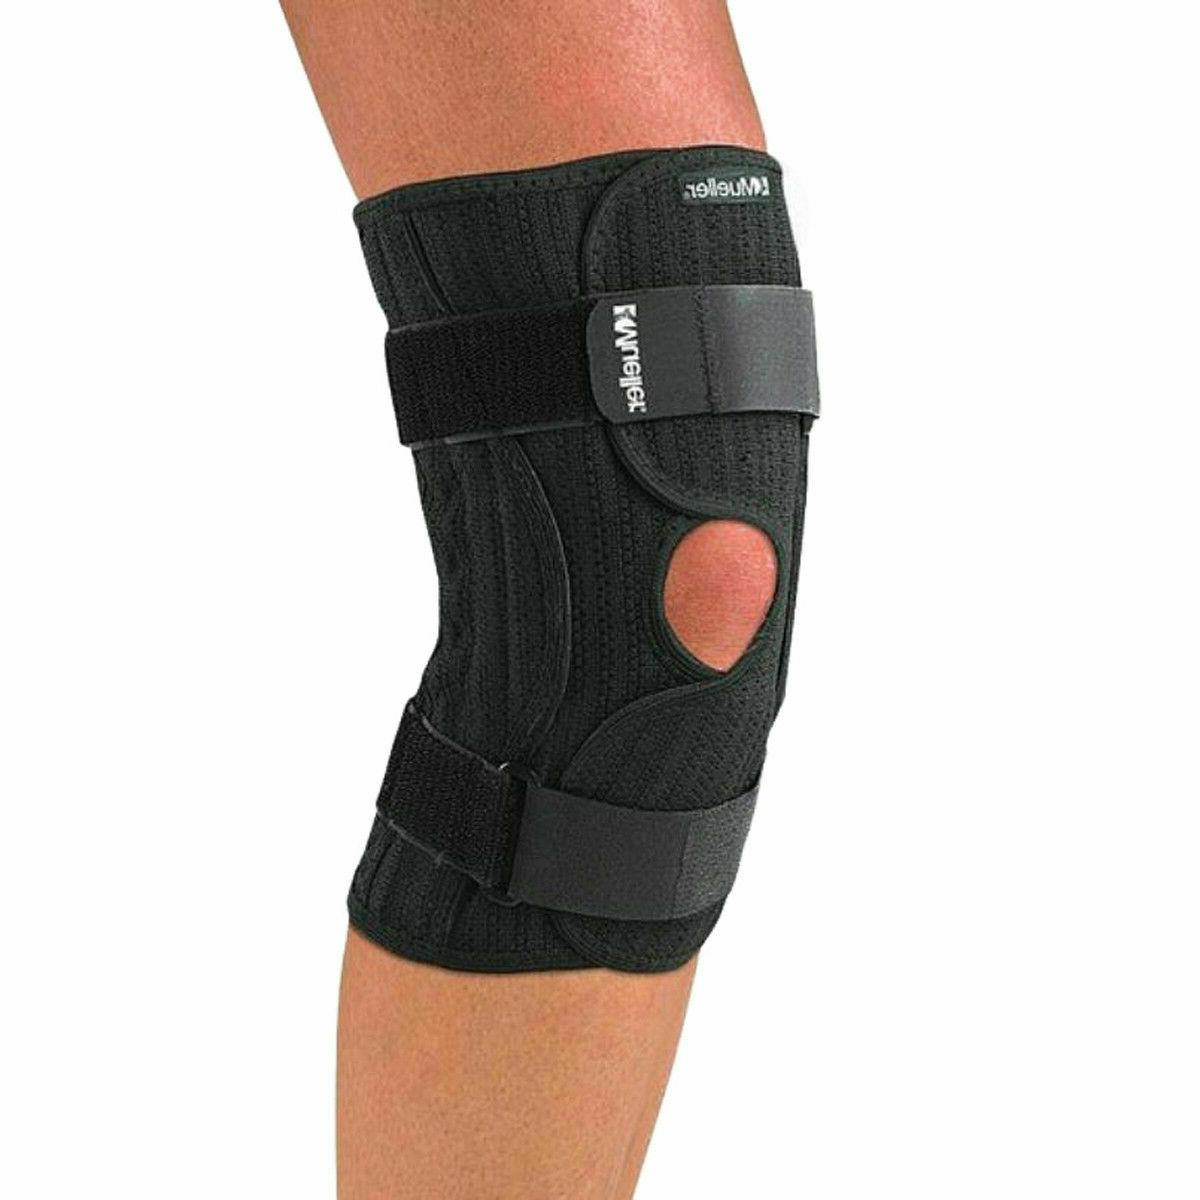 Mueller Knee Brace Elastic, Black, Small/medium